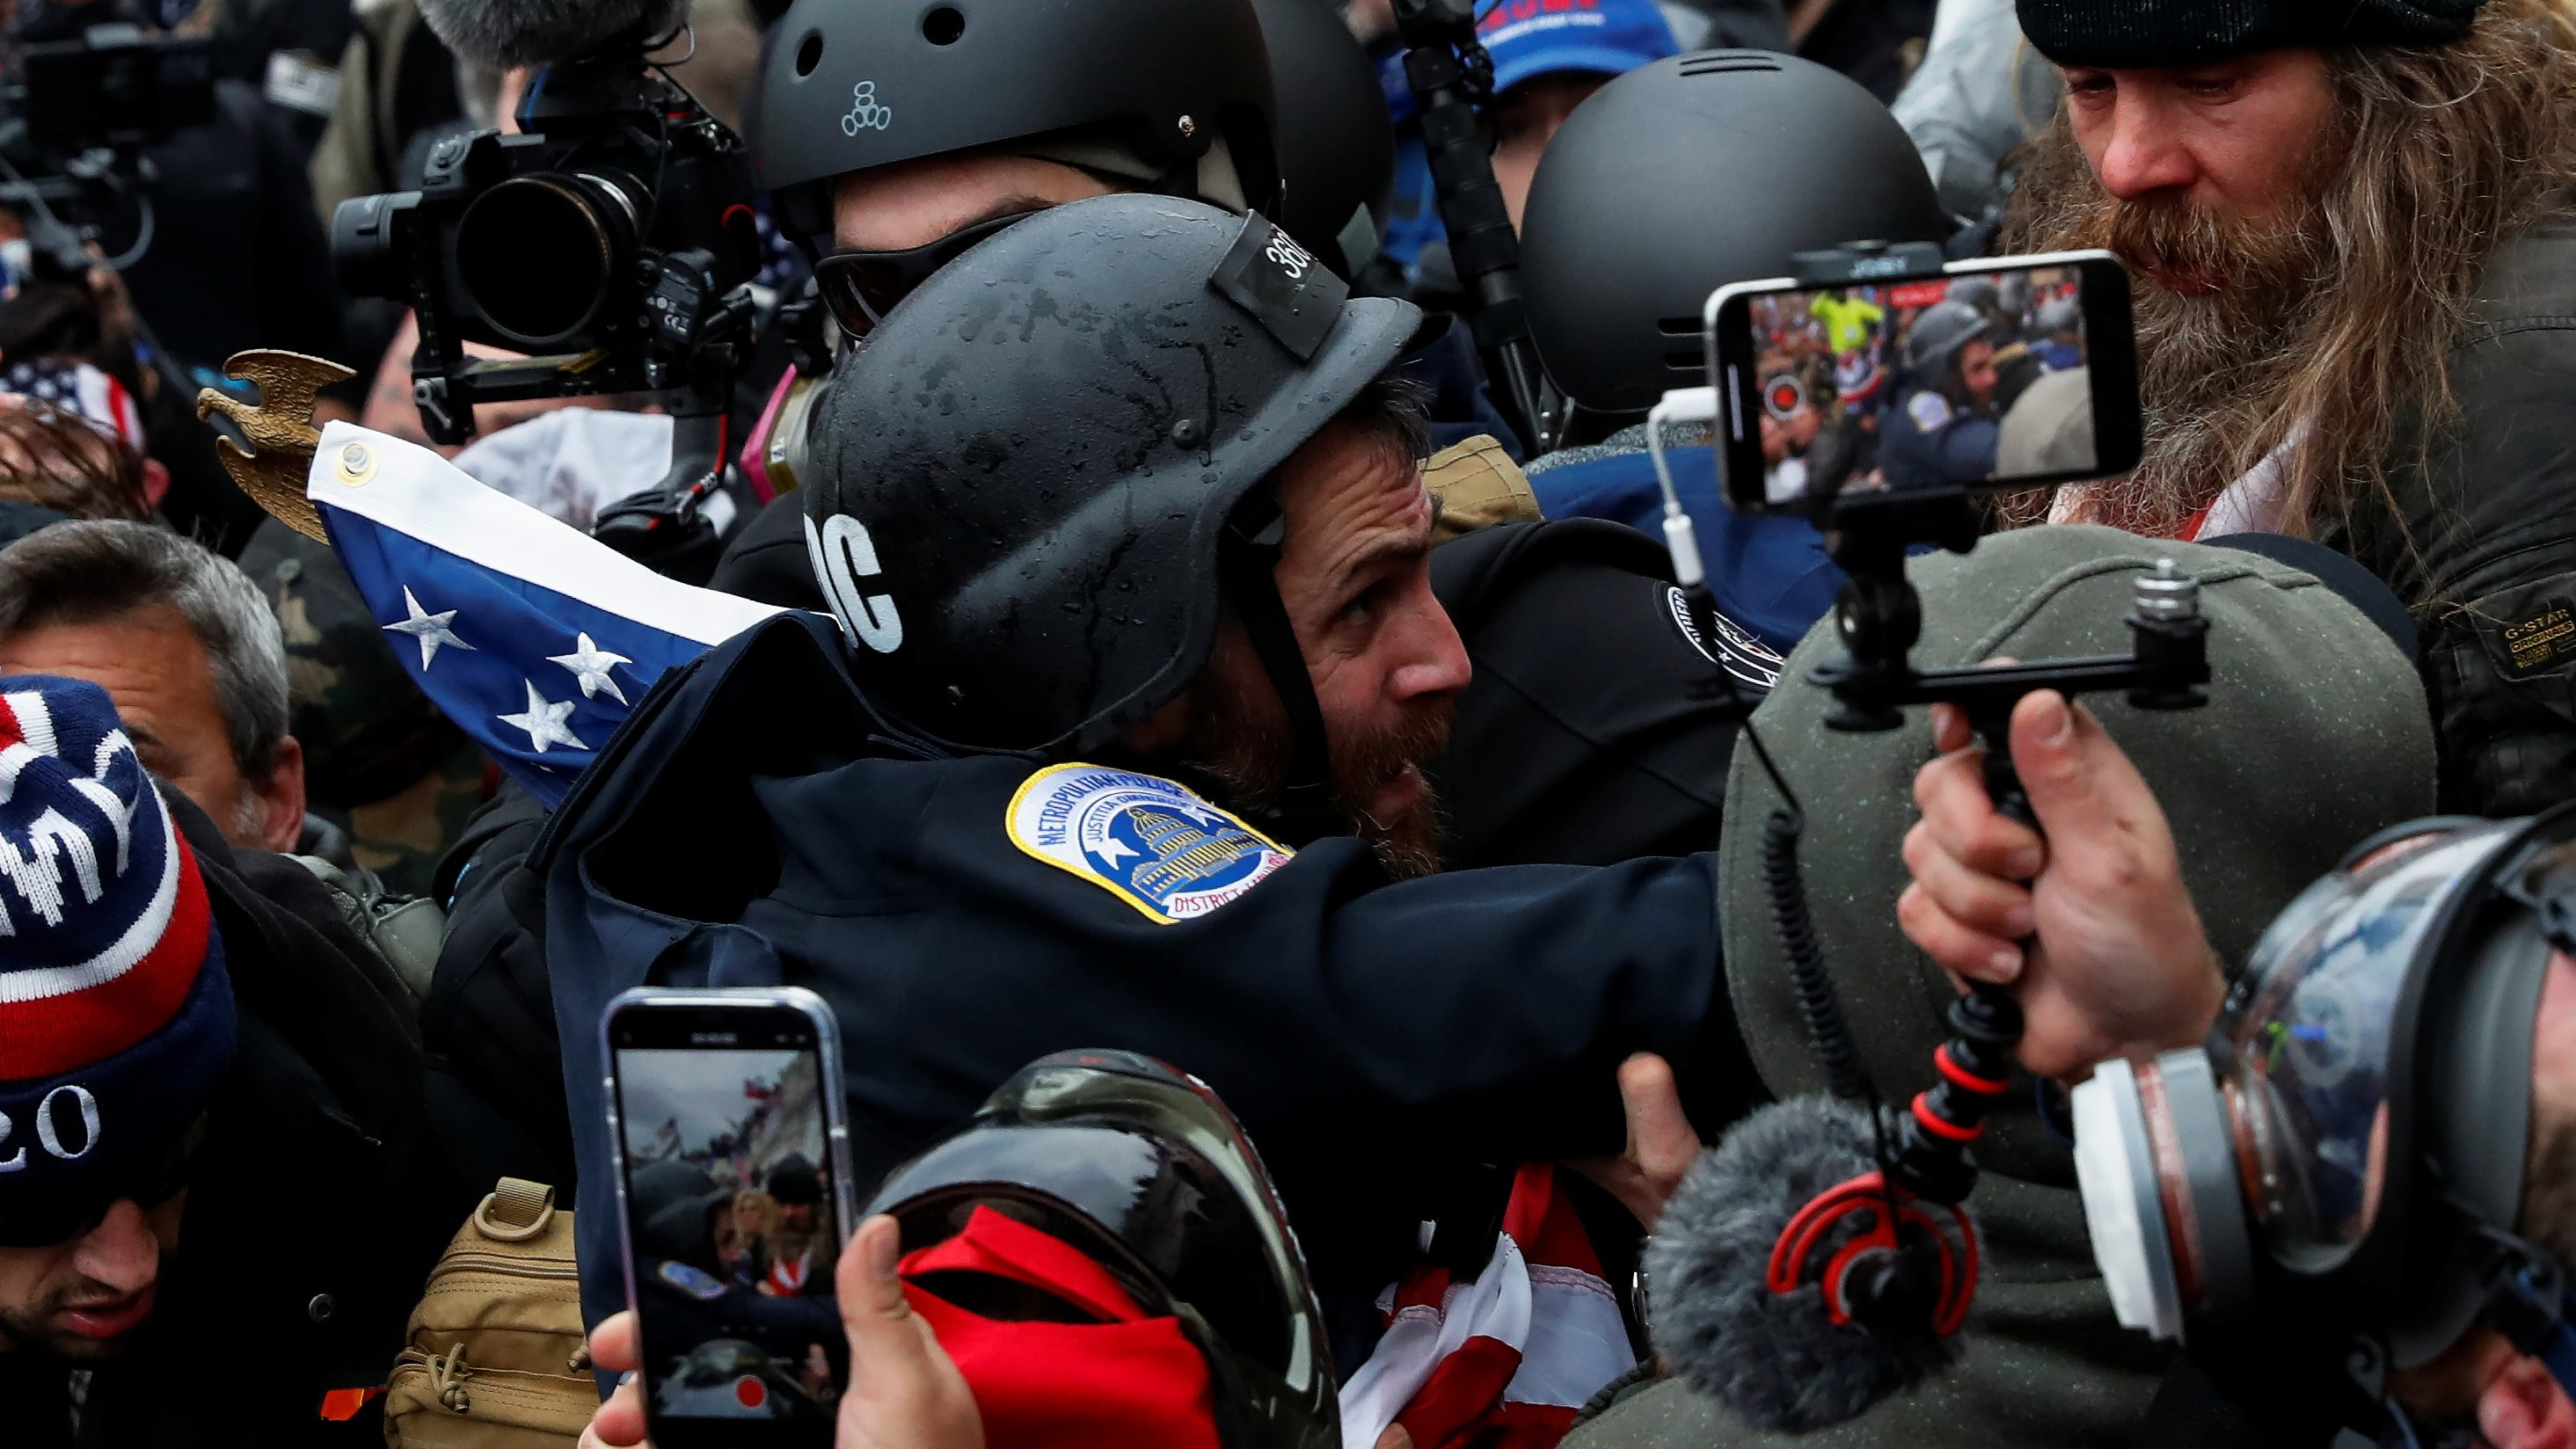 Pro-Trump protesters clash with police and pull out their phones to create videos and take photos during a riot to contest the certification of the 2020 U.S. presidential election results at the U.S. Capitol Building in Washington, U.S, January 6, 2021.